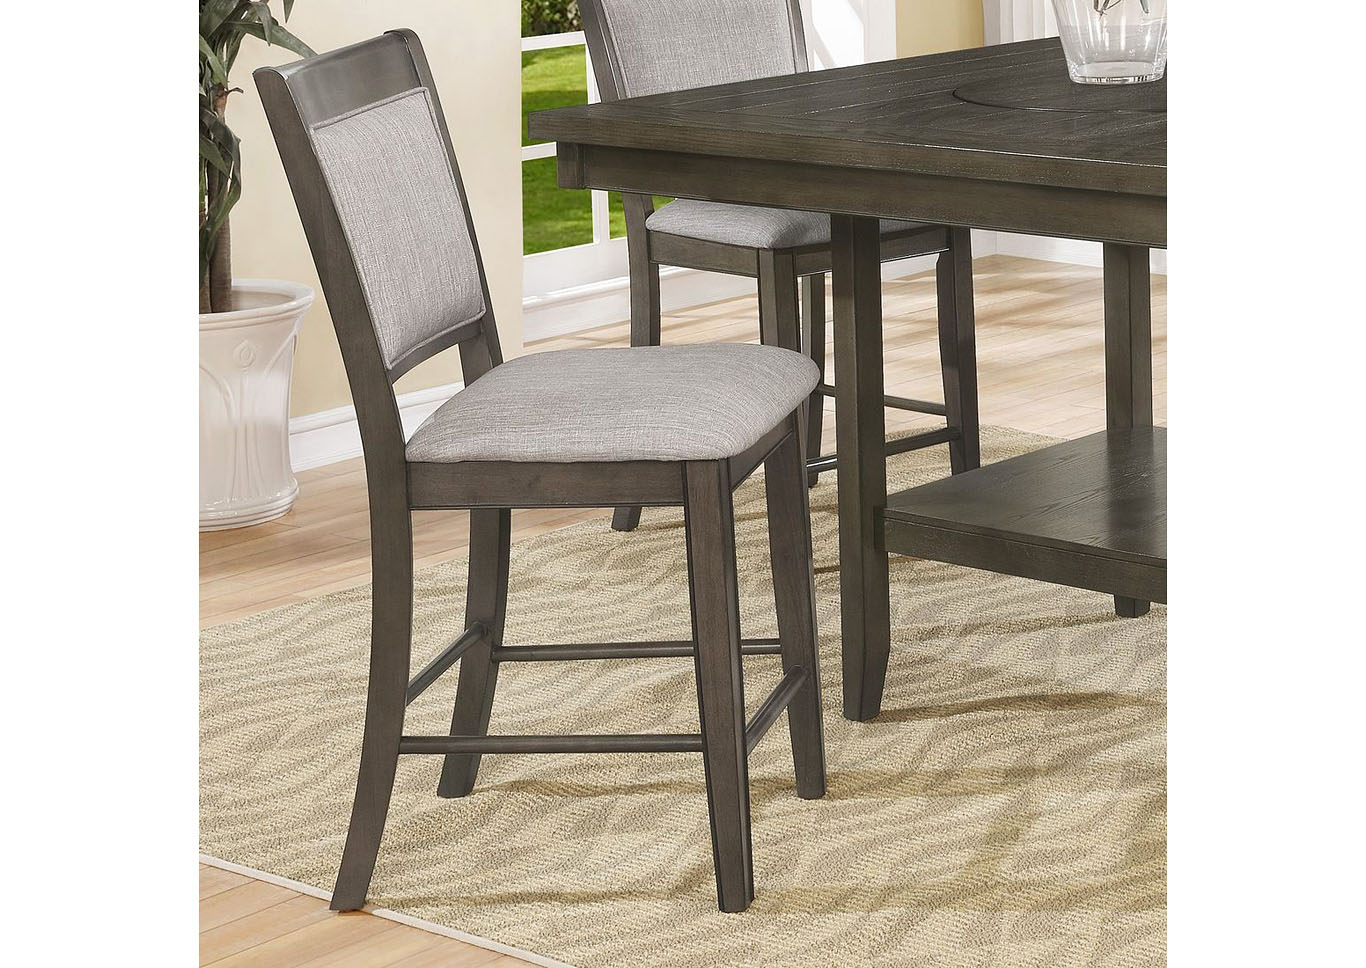 Melrose Gray Counter Height Set - Table with 4 Stools,Instore